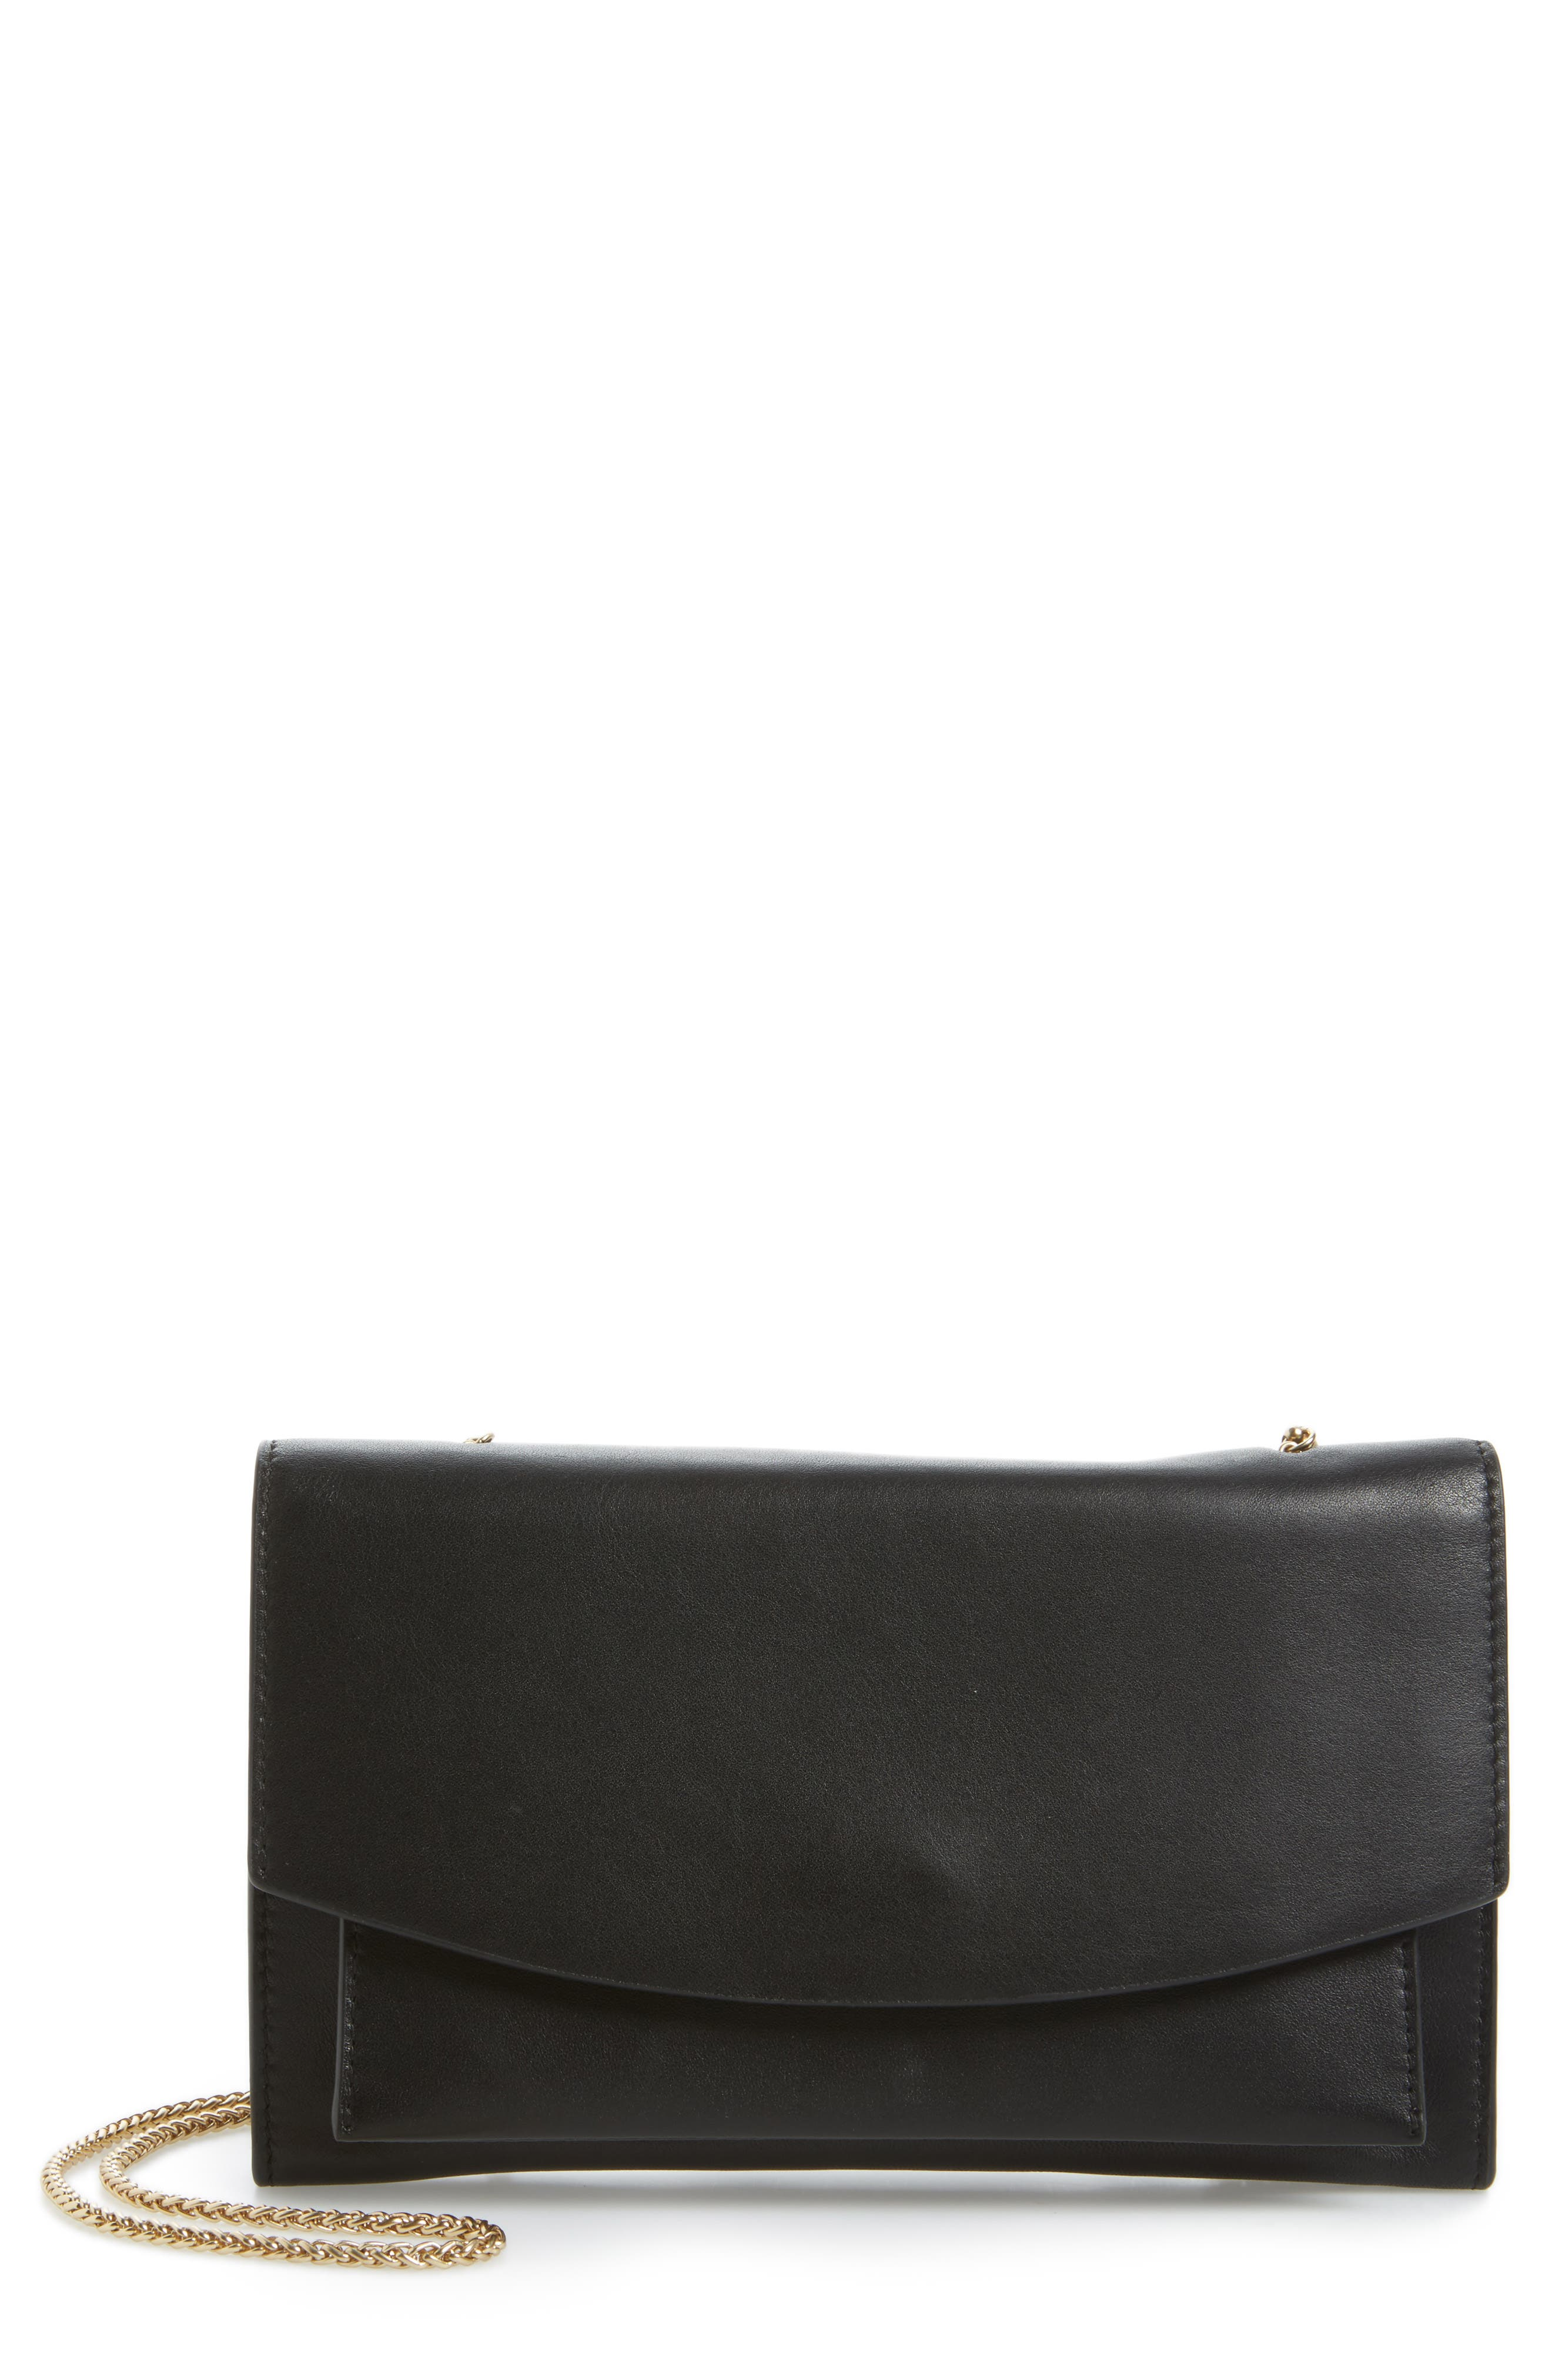 Main Image - Skagen Eryka Leather Envelope Clutch with Detachable Chain